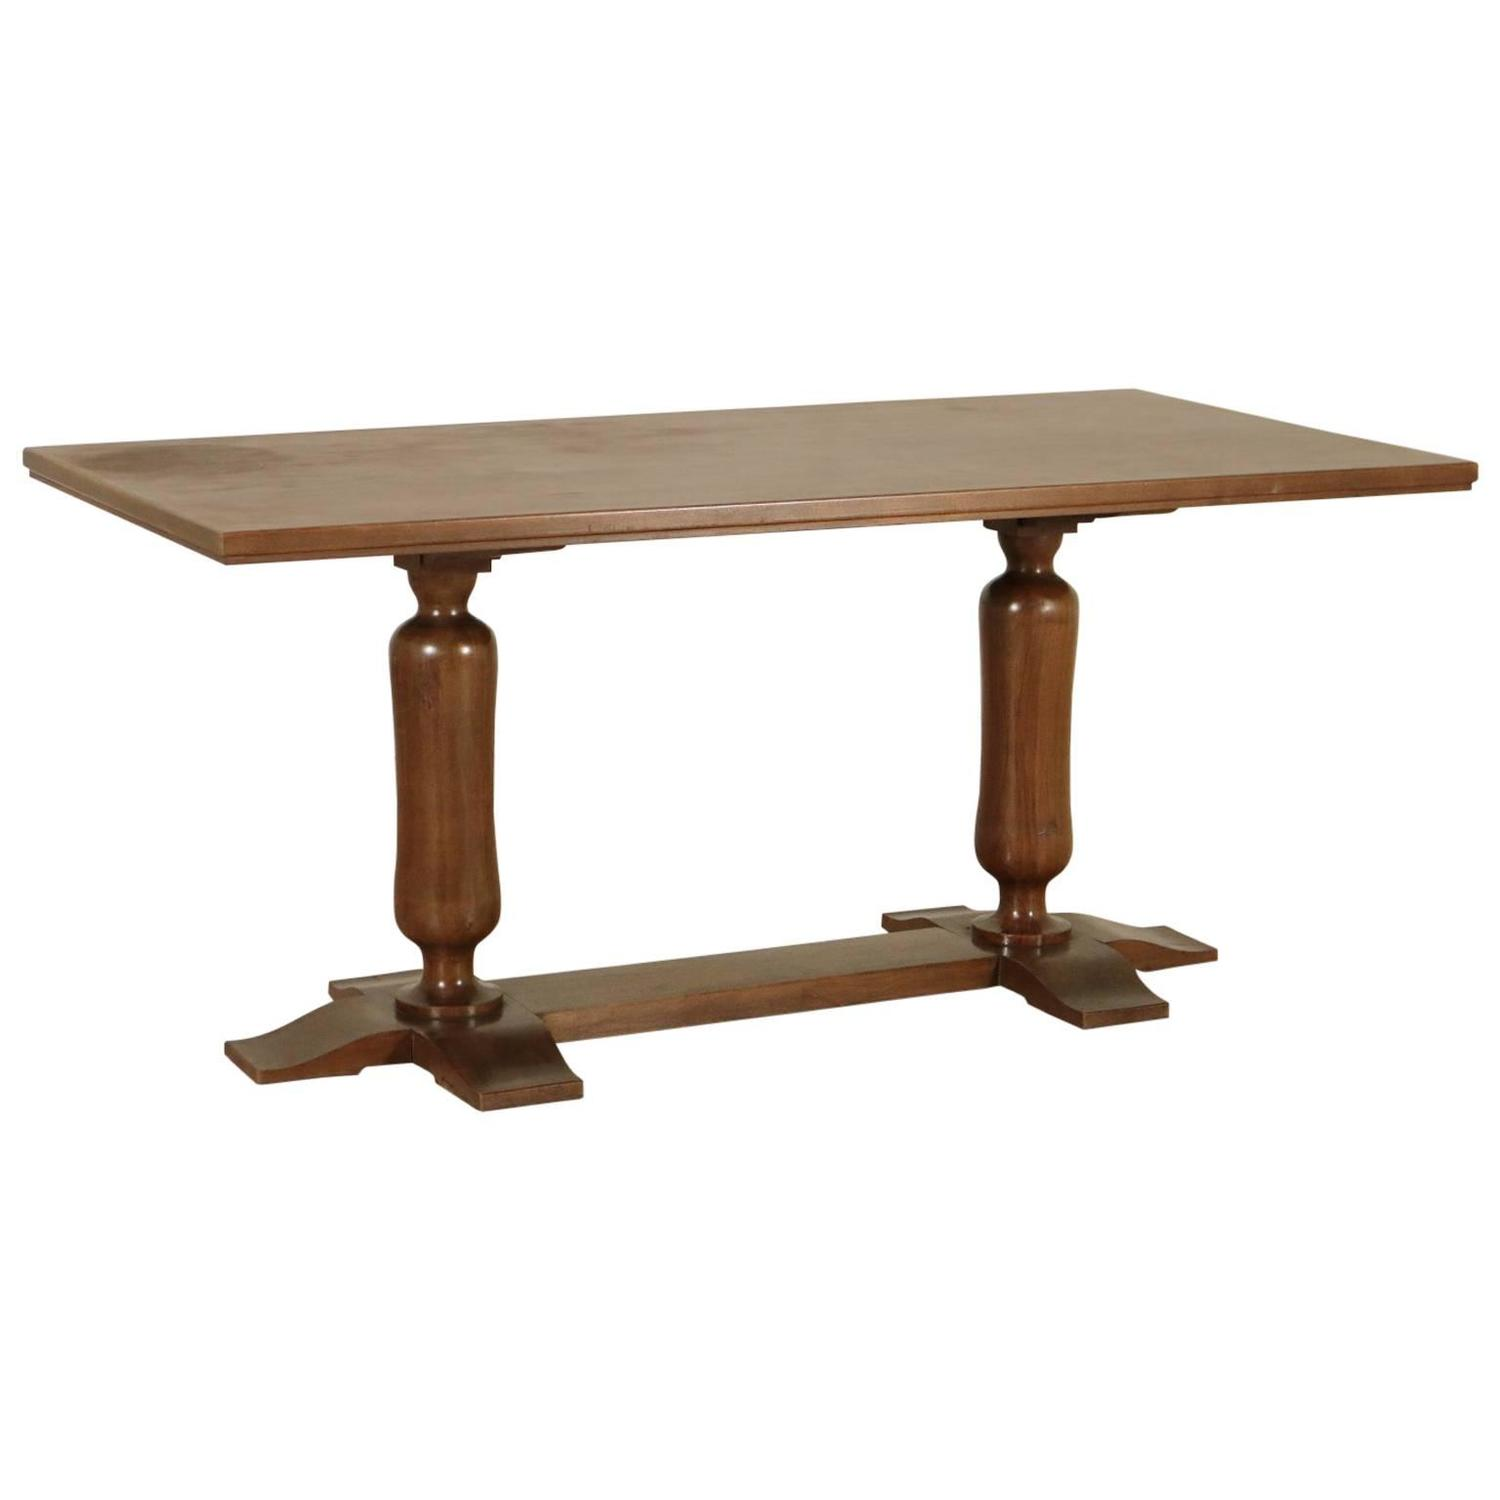 Table walnut solid wood and walnut veneer italy 1940s for Solidworks design table zoom